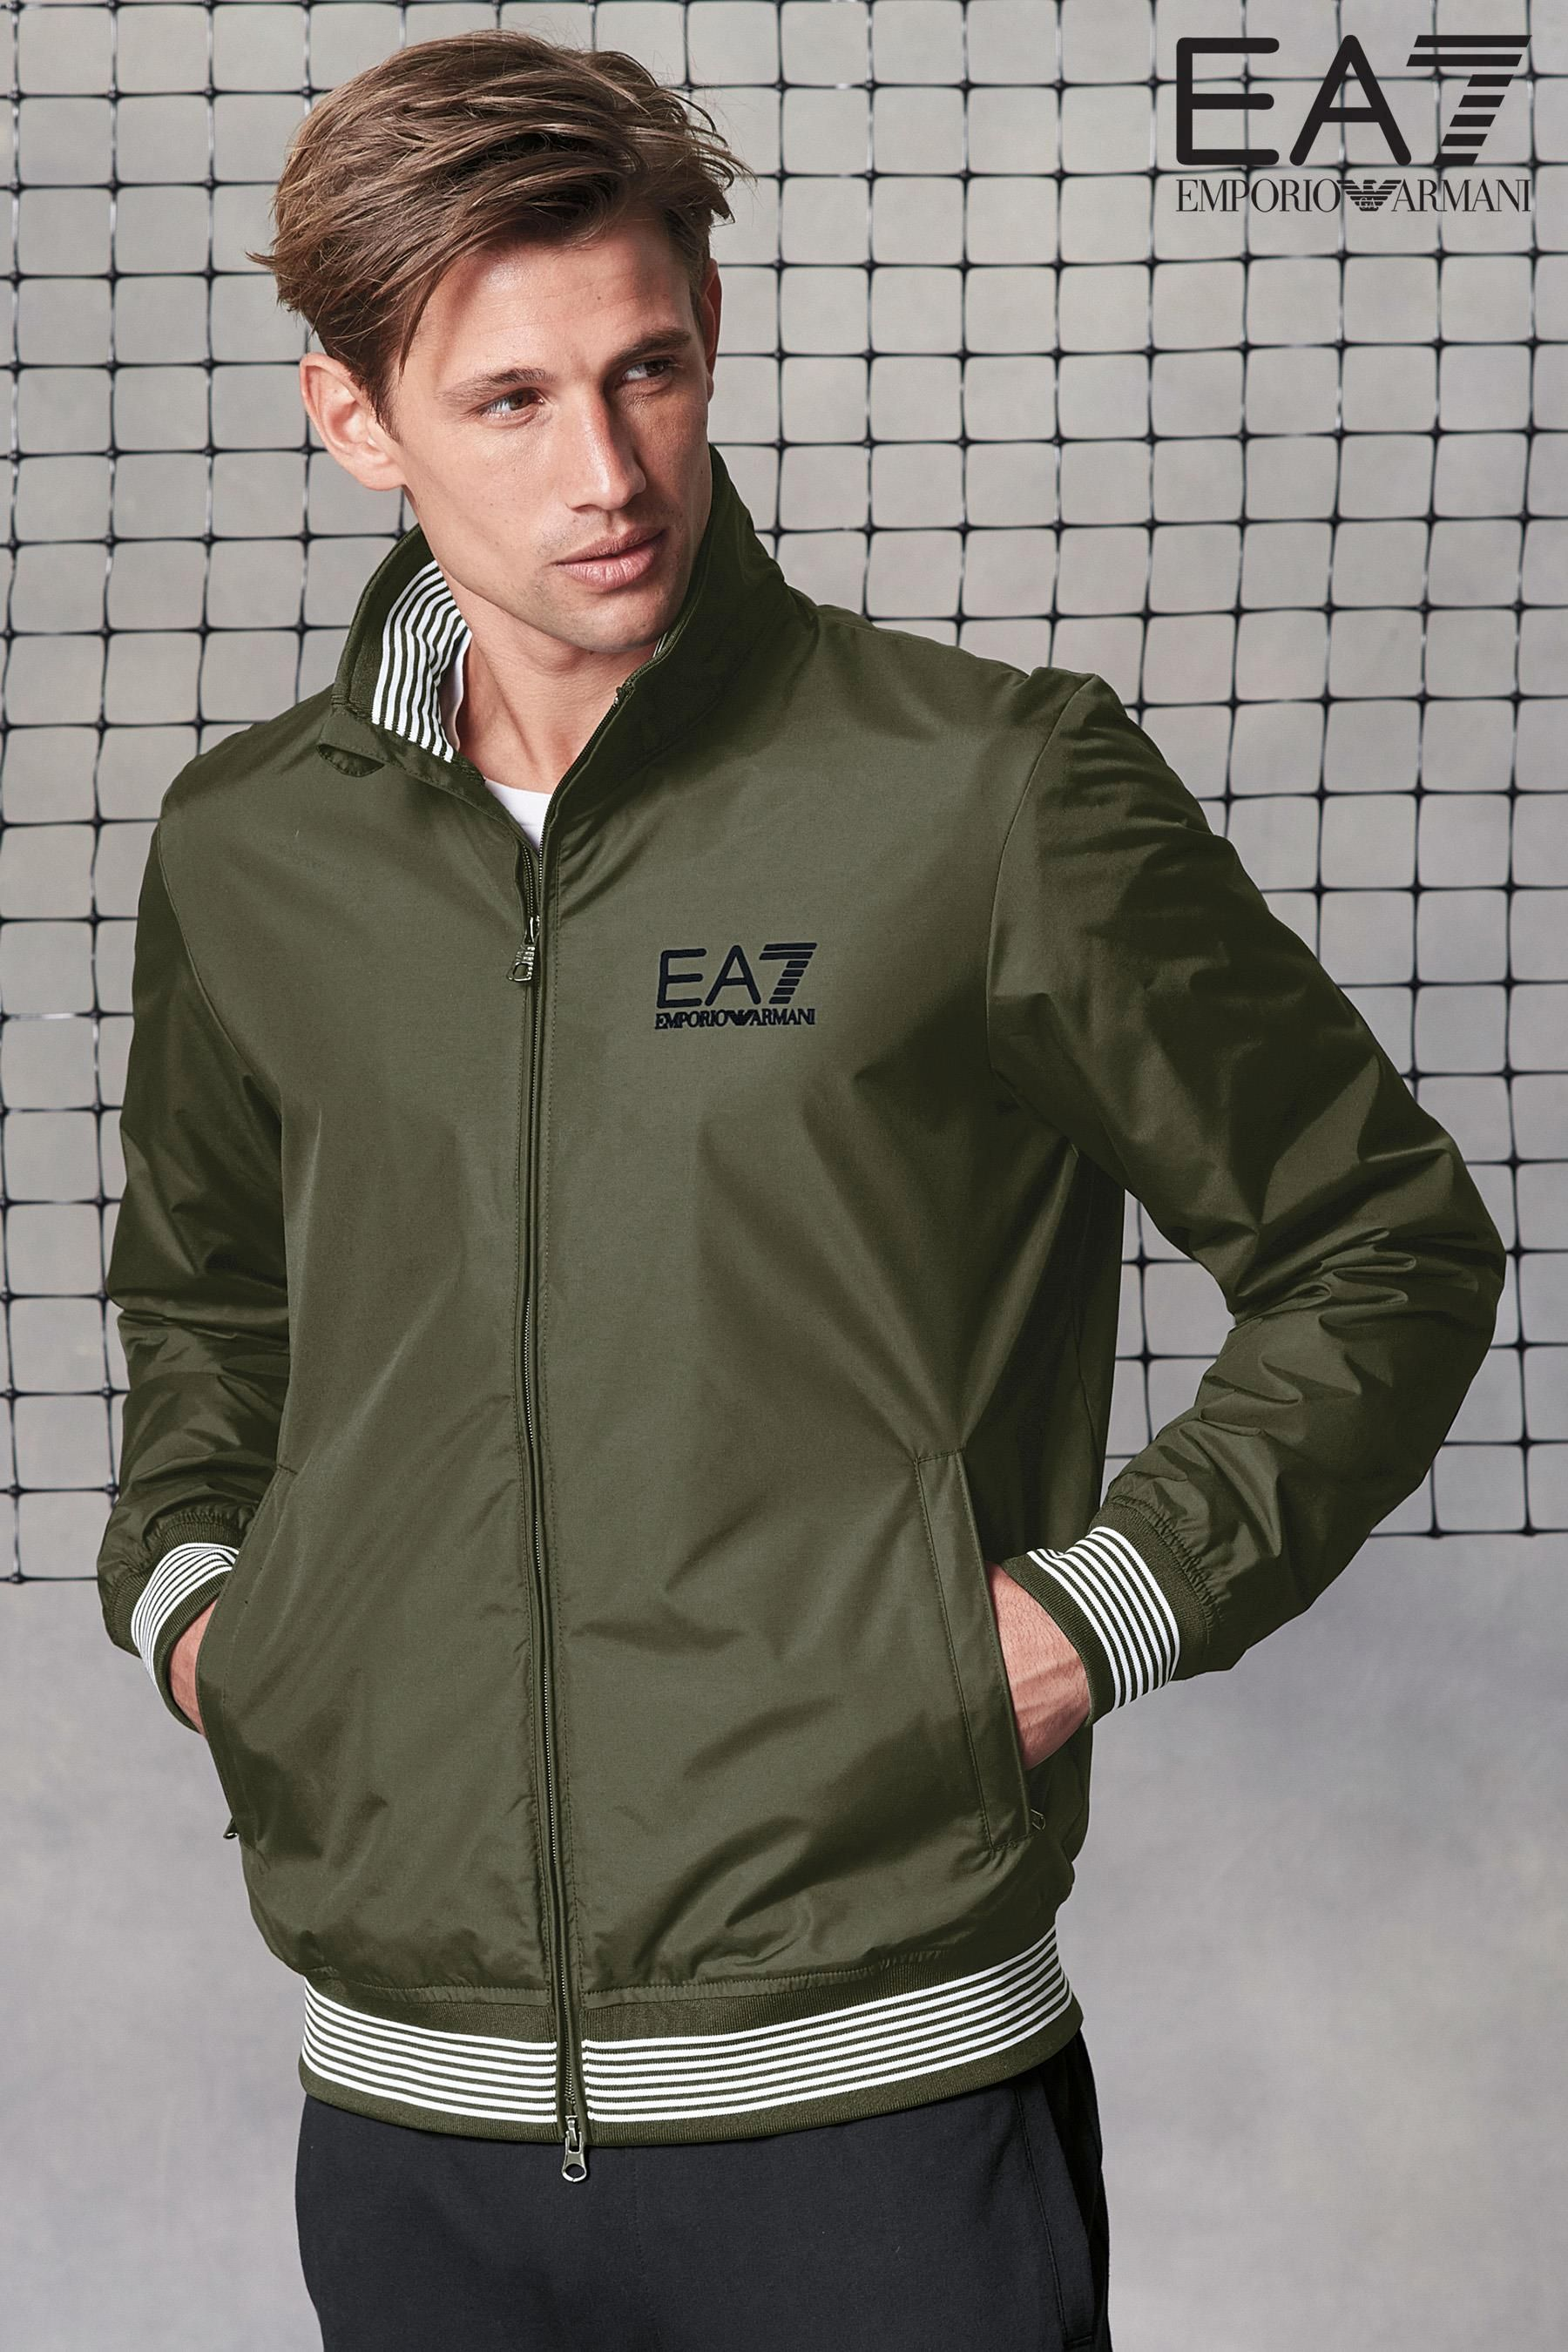 a9e7bb0fb Buy Emporio Armani EA7 Forest Green Track Jacket from the Next UK ...